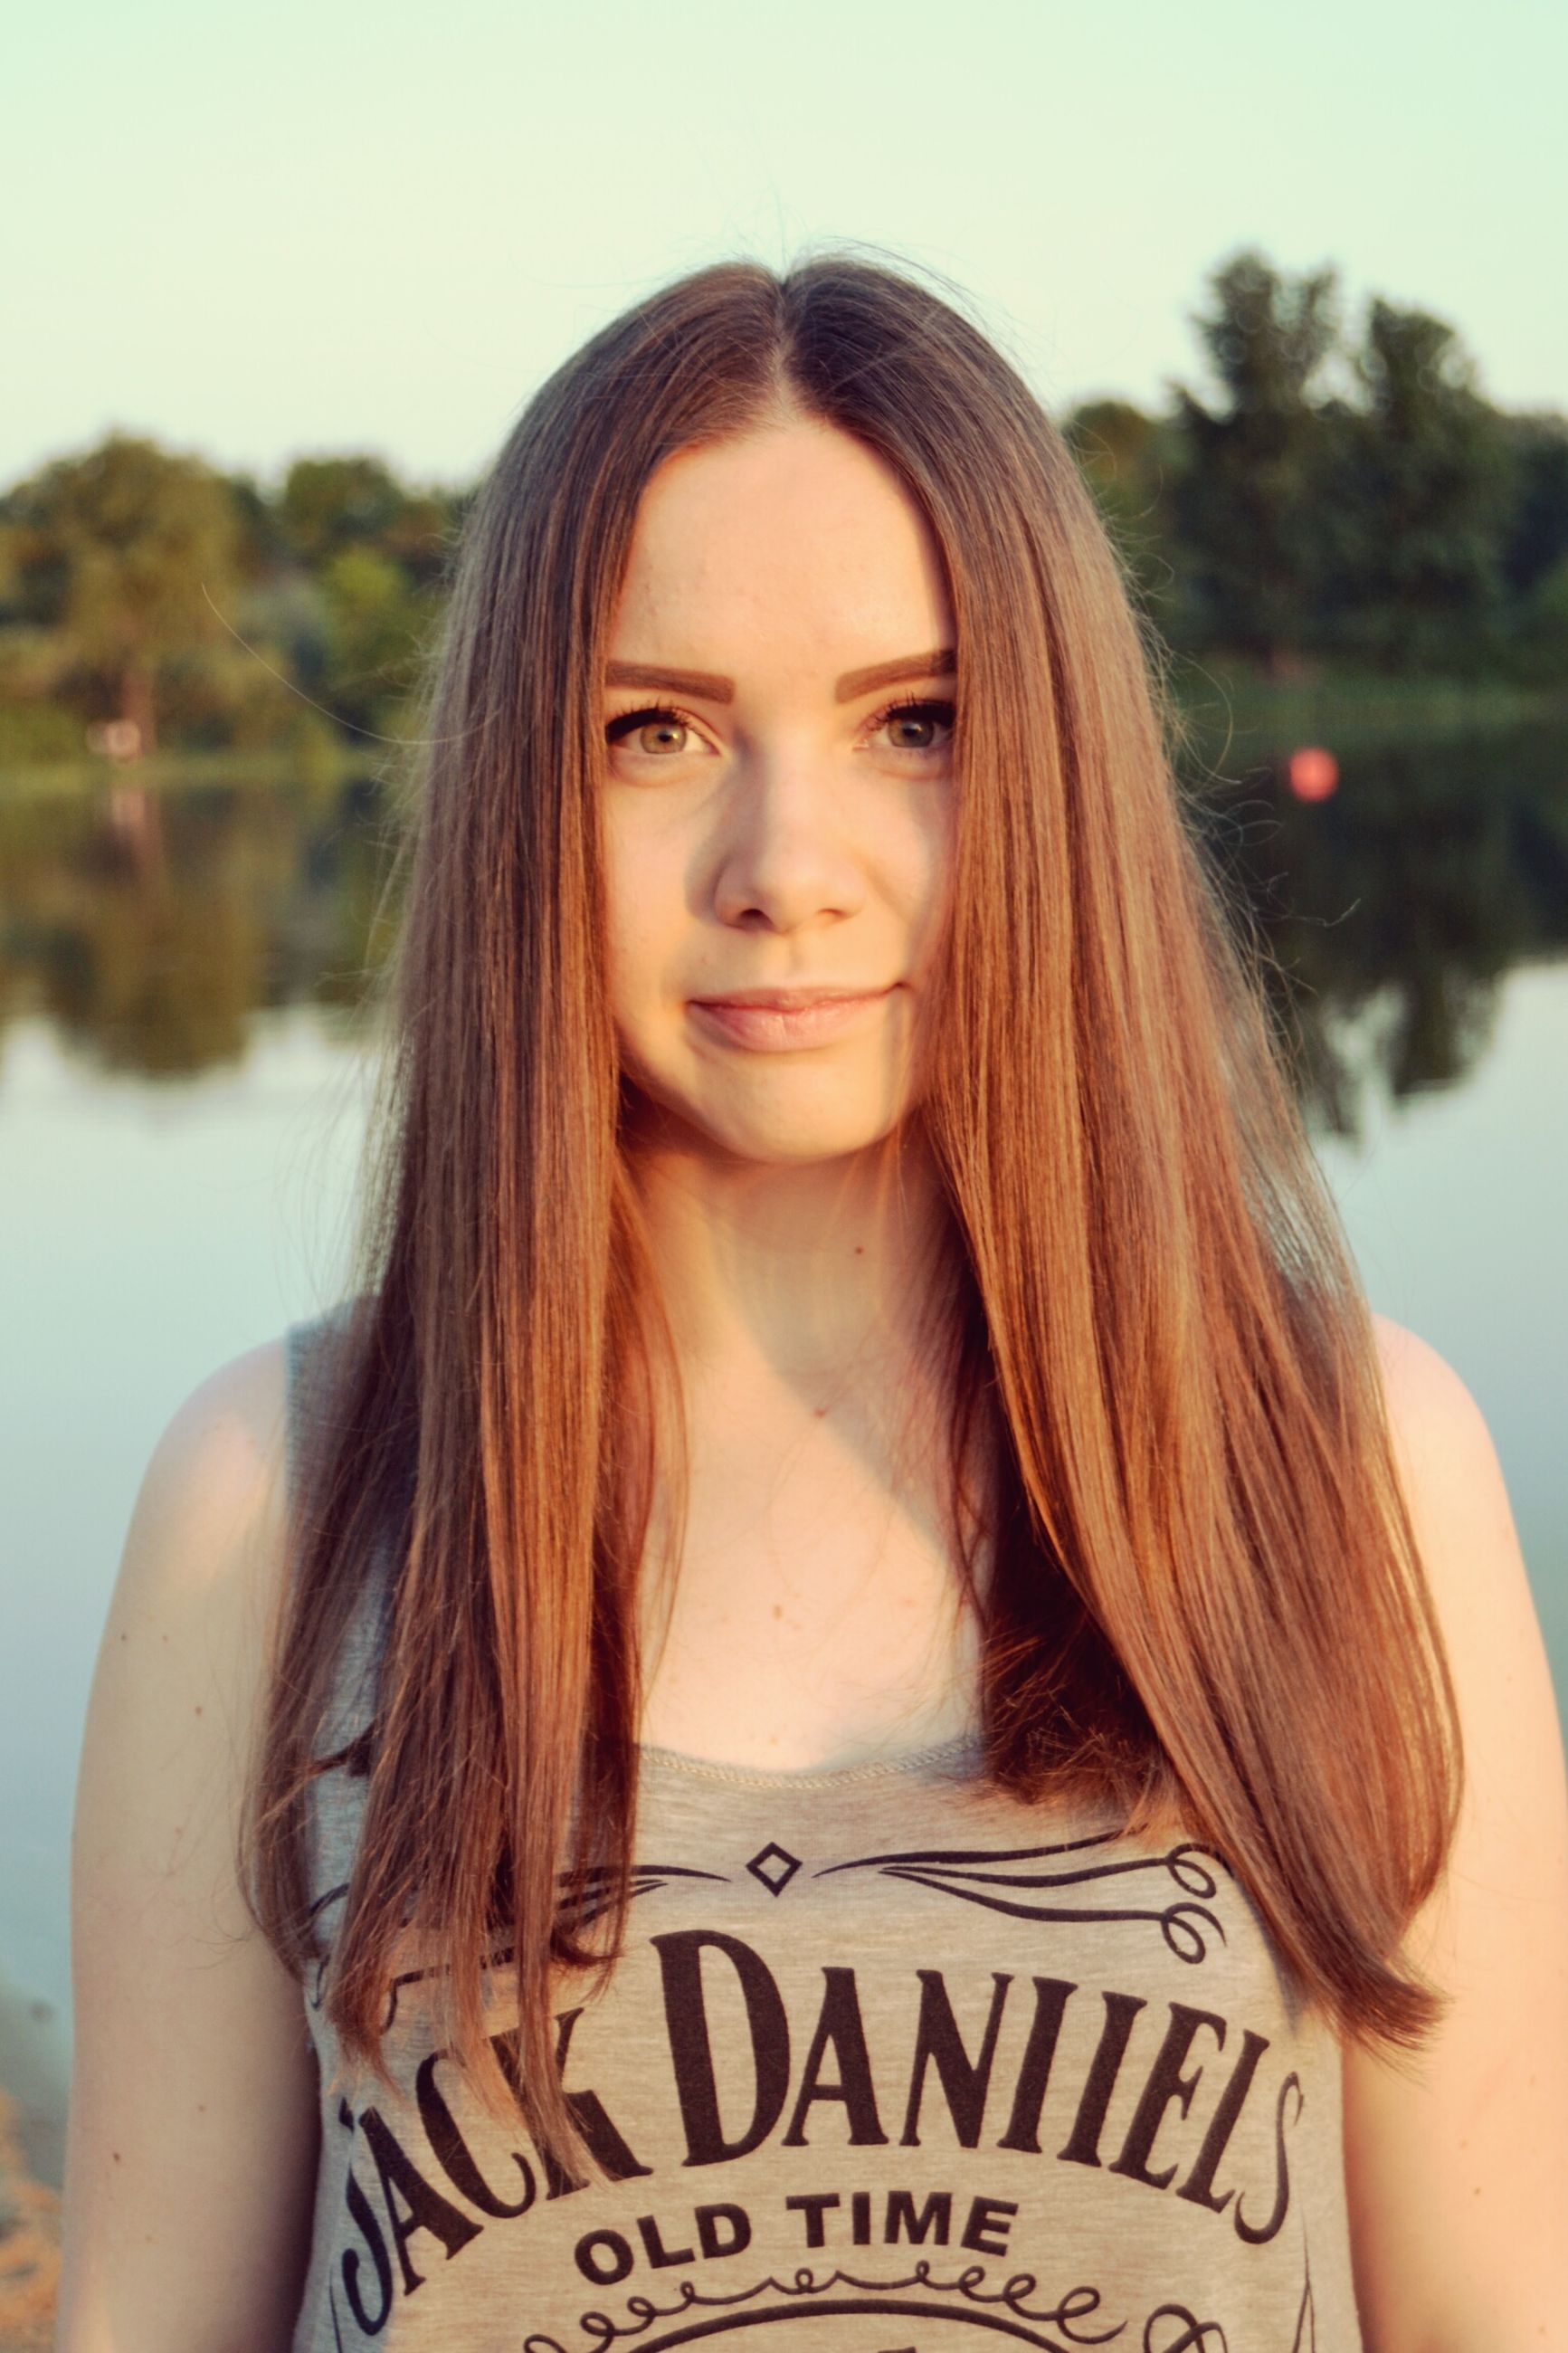 young women, long hair, young adult, person, lifestyles, portrait, looking at camera, leisure activity, brown hair, front view, smiling, waist up, focus on foreground, casual clothing, medium-length hair, headshot, beauty